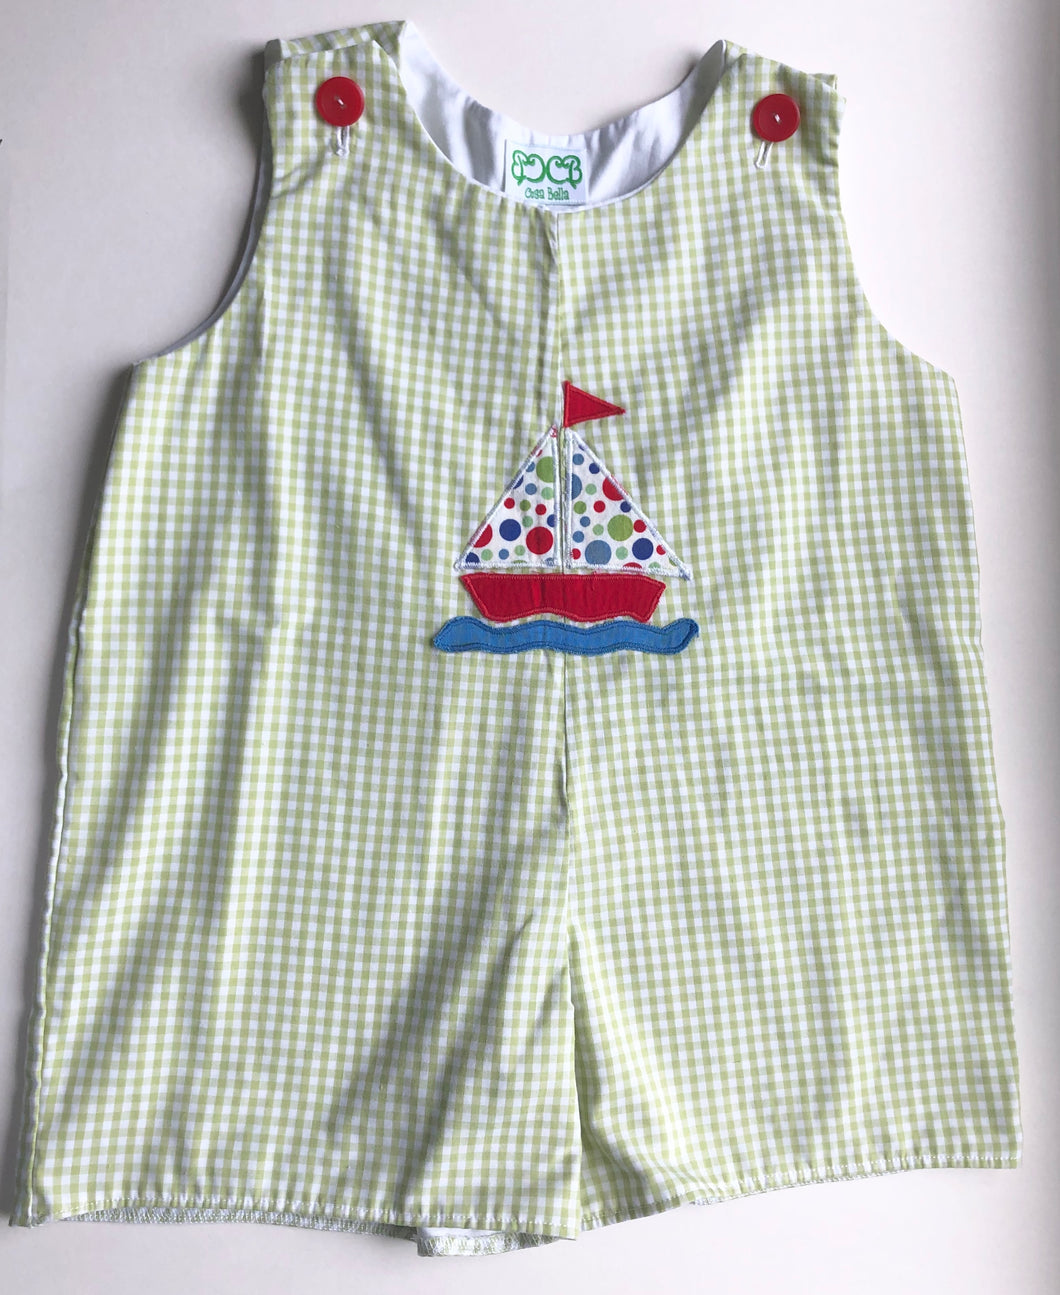 Green Gingham Sailboat Jon Jon